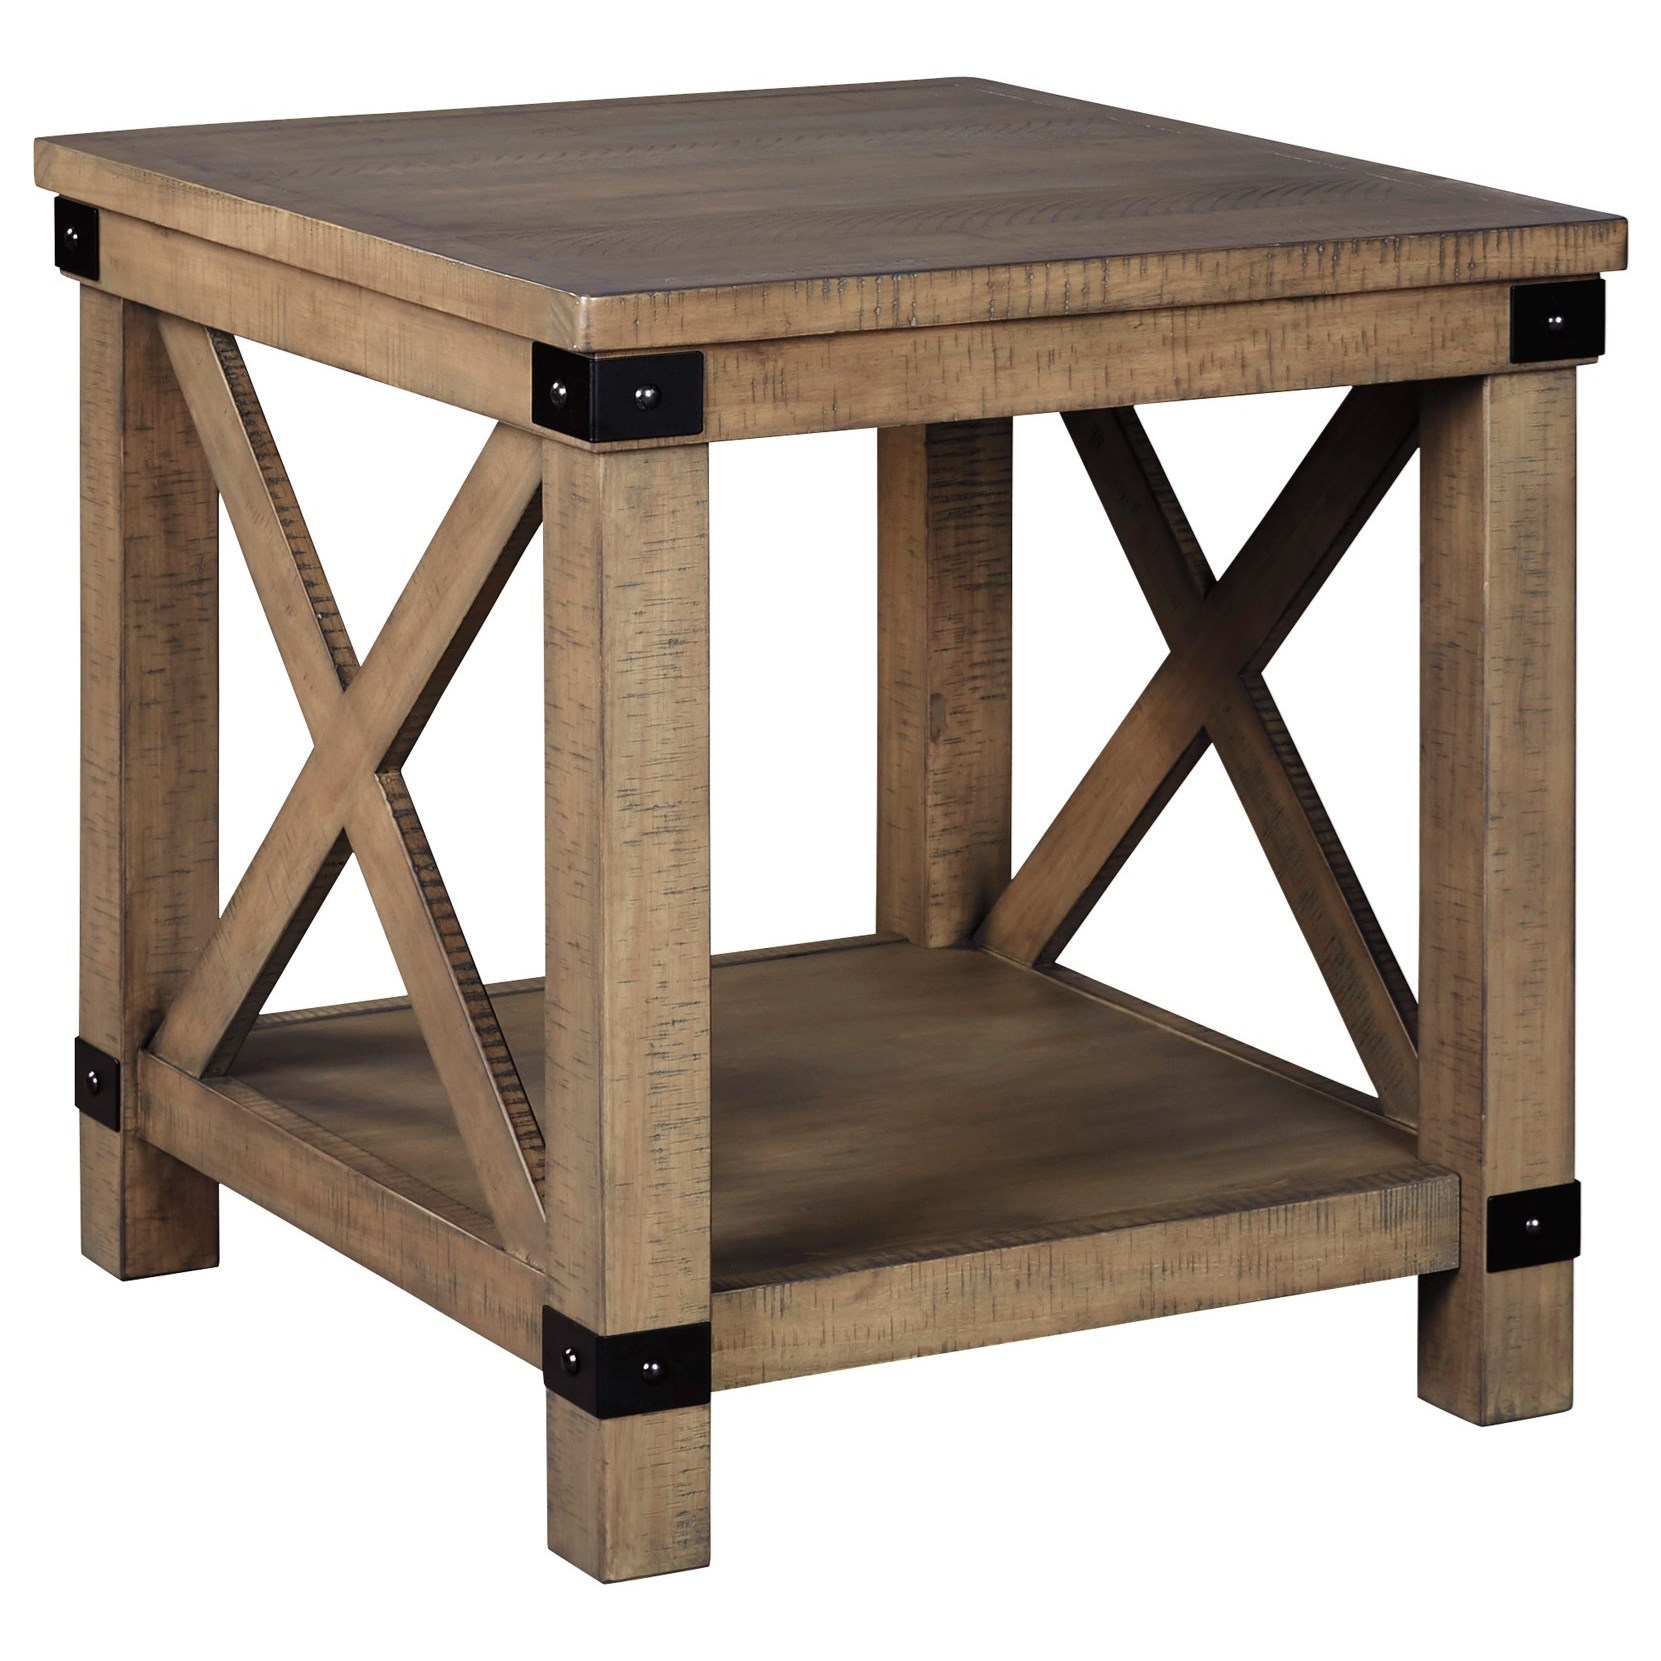 Aldwin Rectangular End Table by Signature Design by Ashley at Value City Furniture